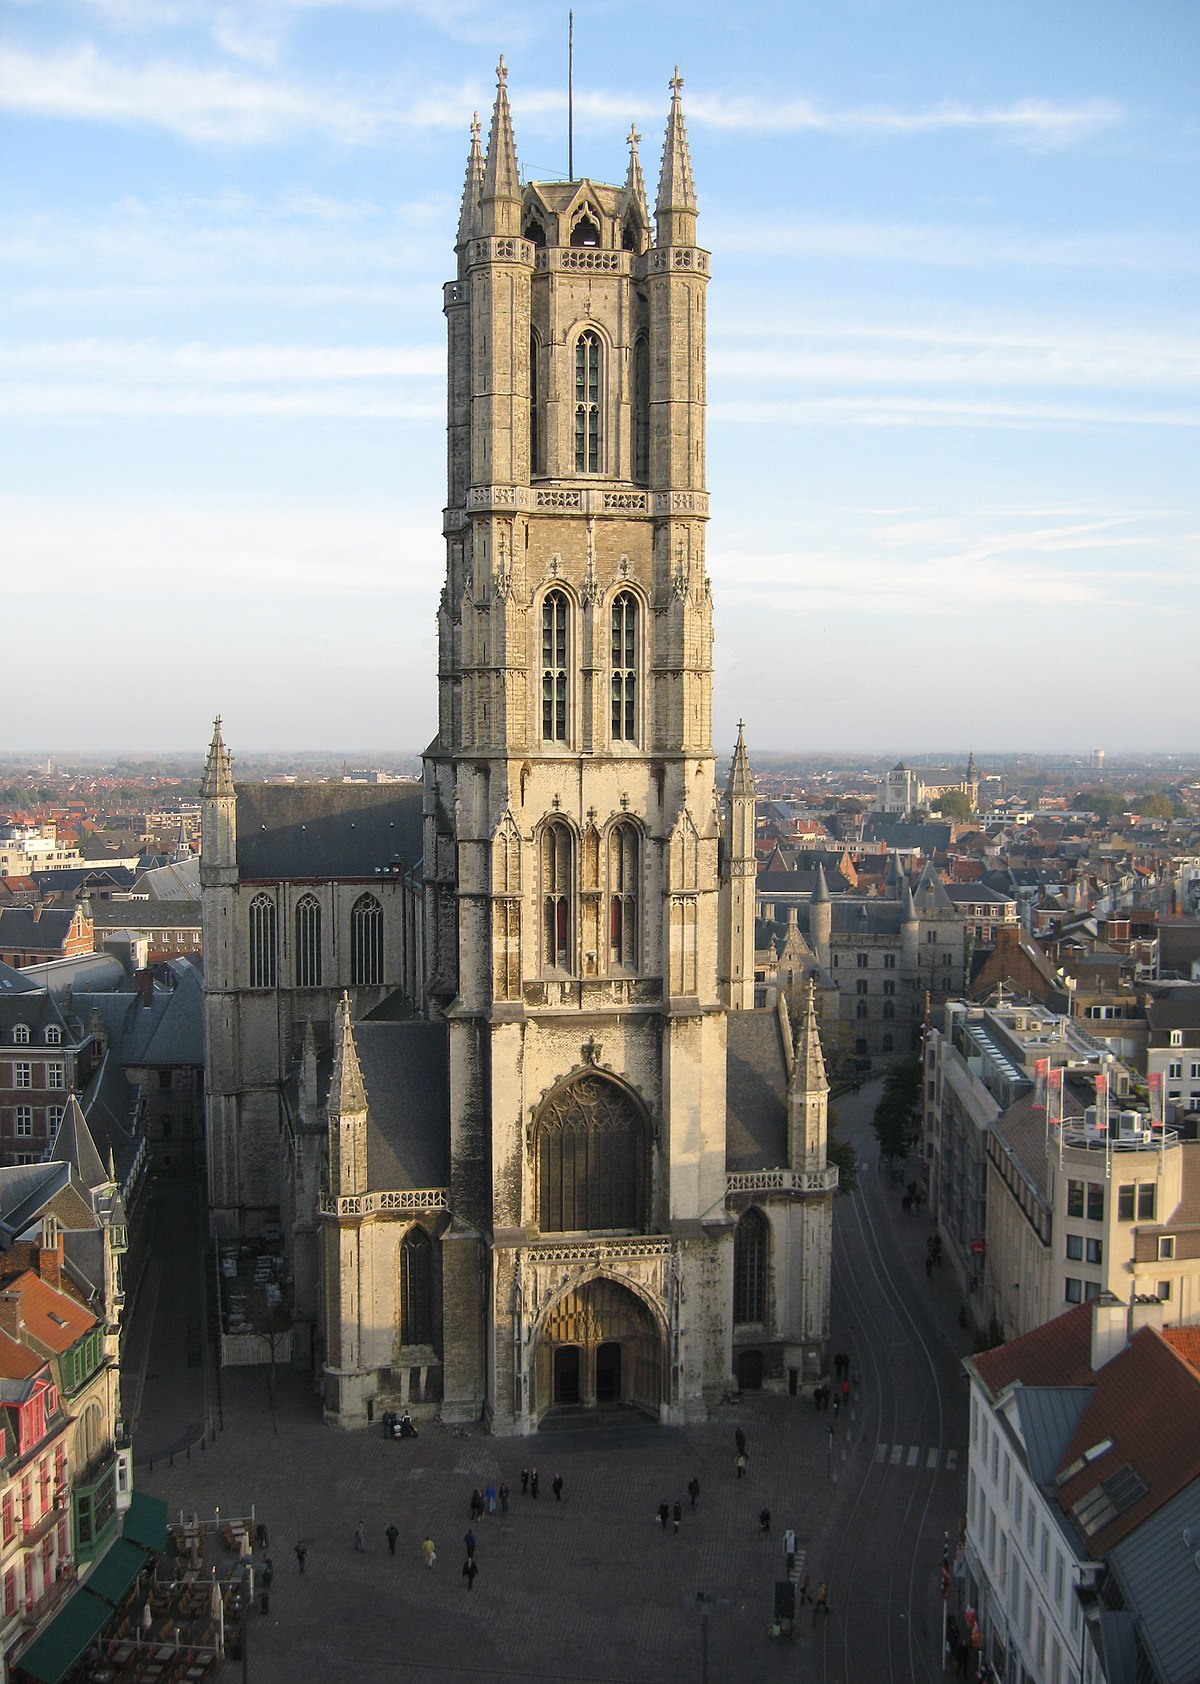 St Bavo's Cathedral, Ghent - Wikipedia